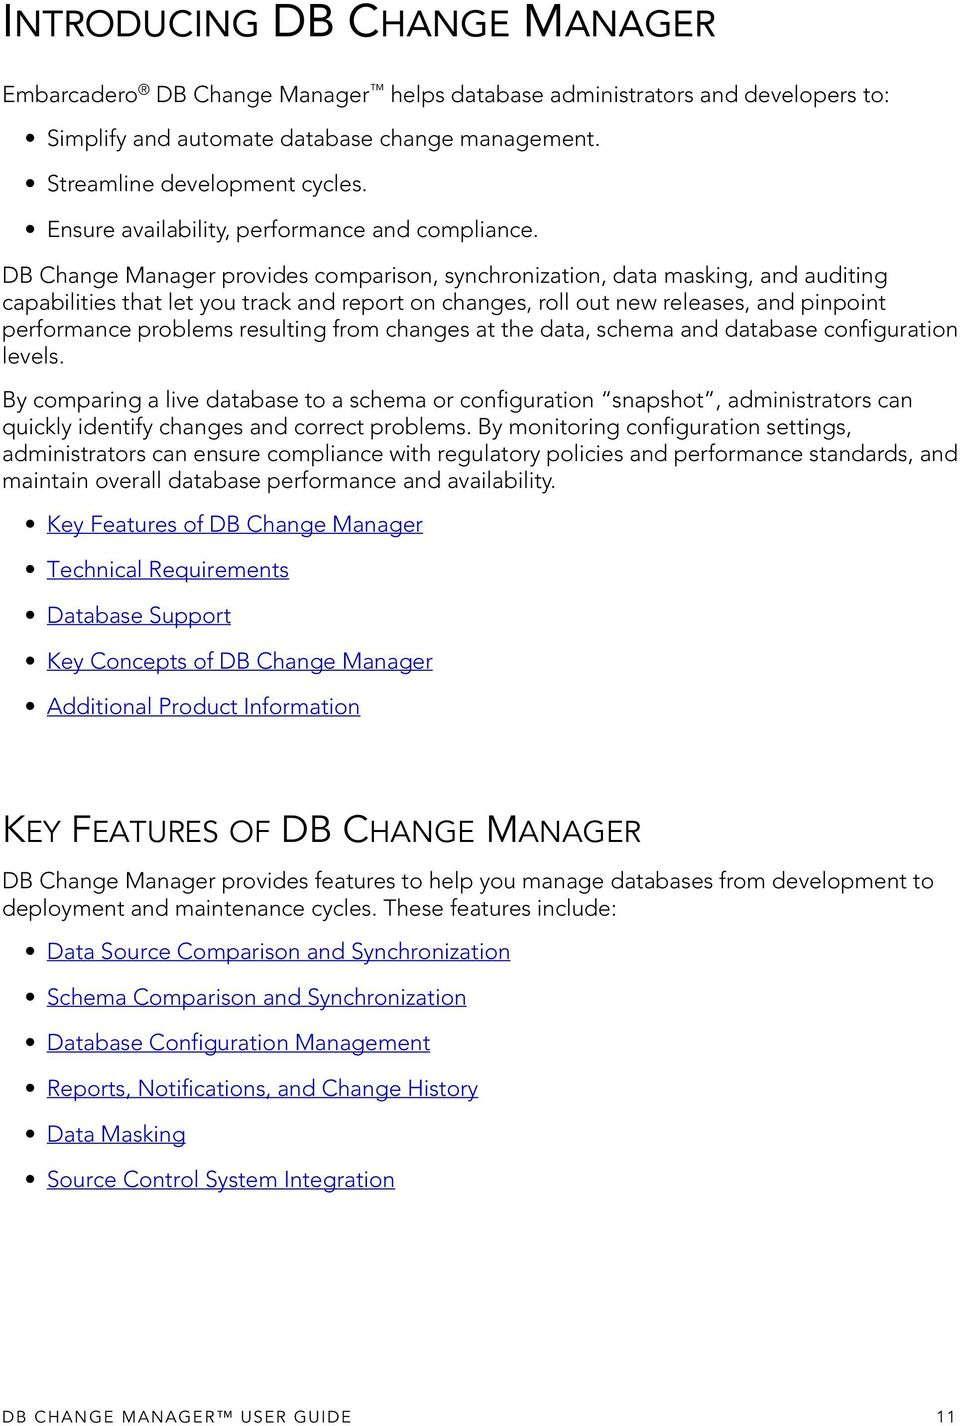 DB Change Manager provides comparison, synchronization, data masking, and auditing capabilities that let you track and report on changes, roll out new releases, and pinpoint performance problems